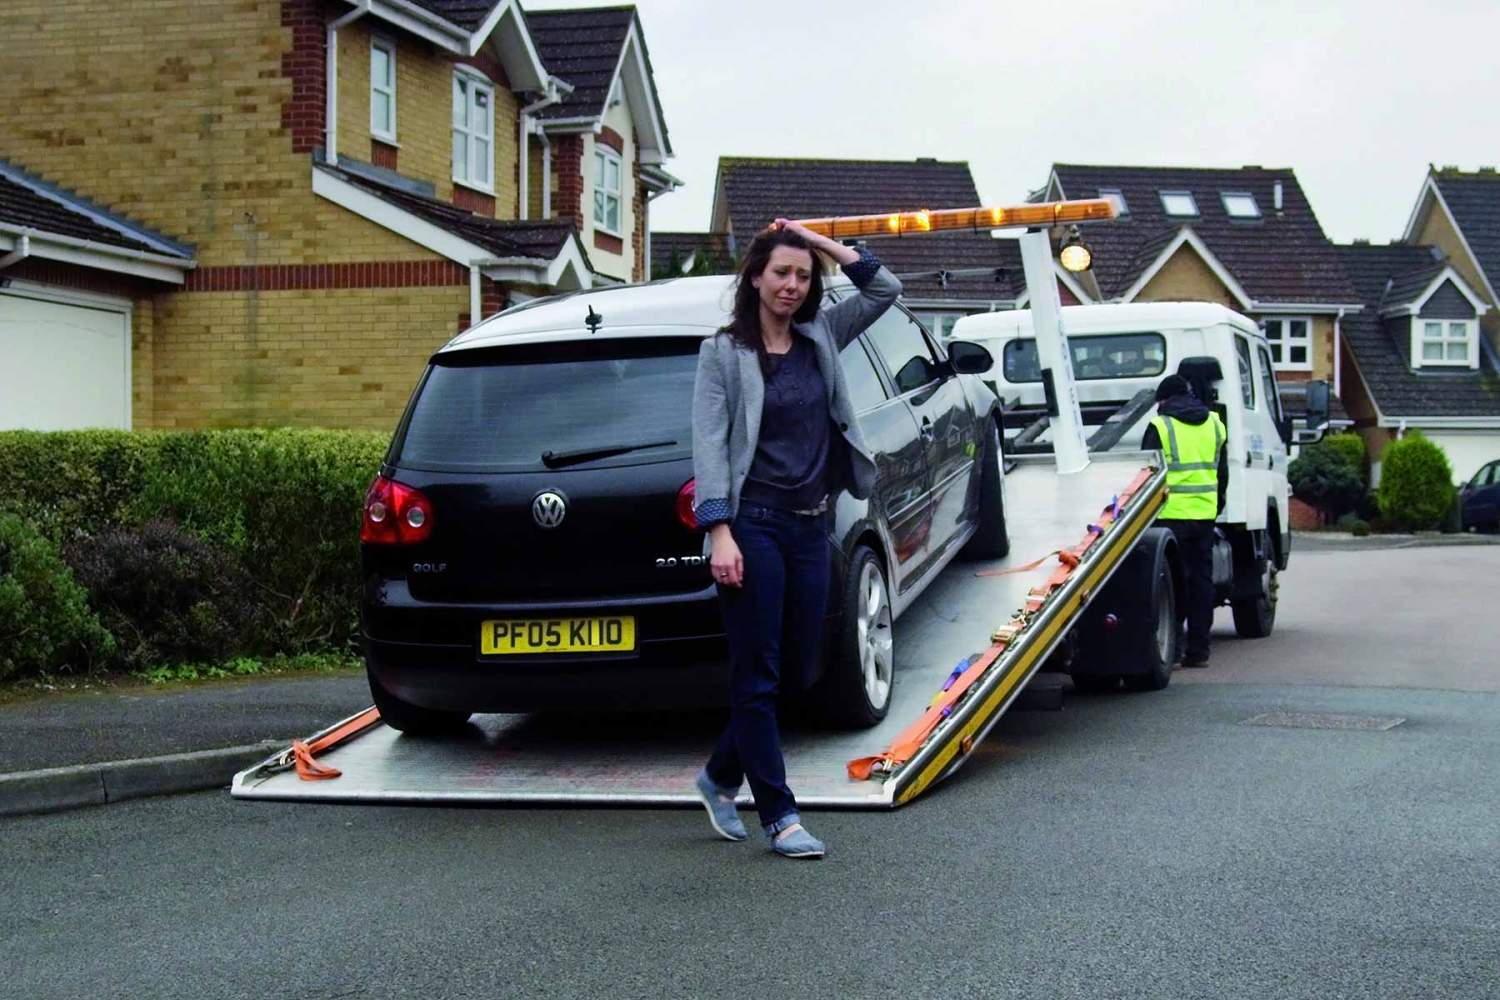 Used car recovery